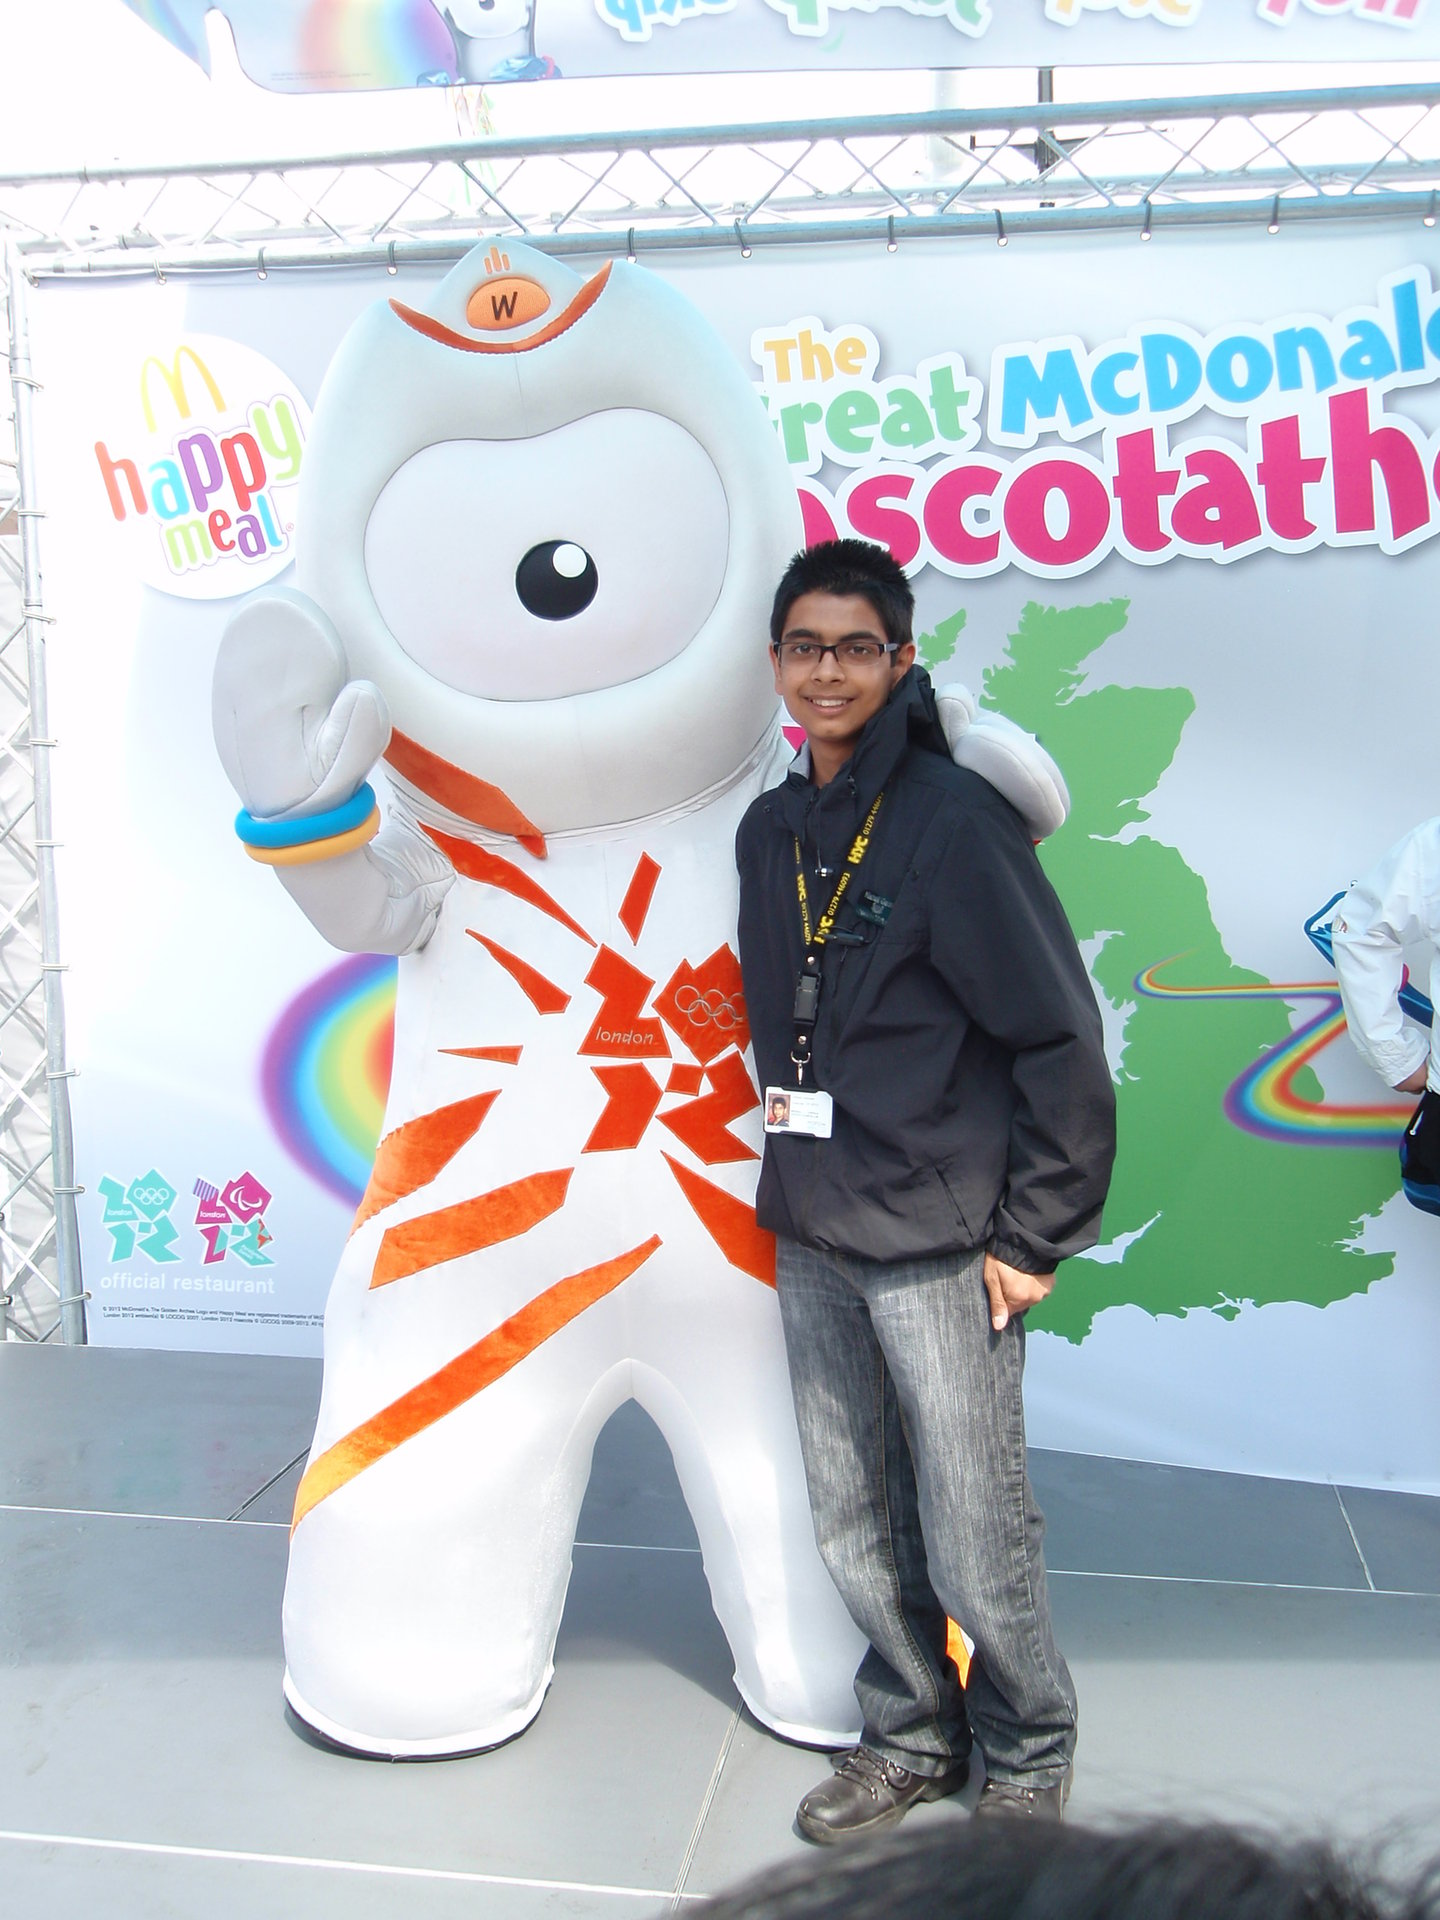 Nishall+Meets+Wenlock+Olympic+Mascot+at+Broad+Walk+on+7.7.12.JPG